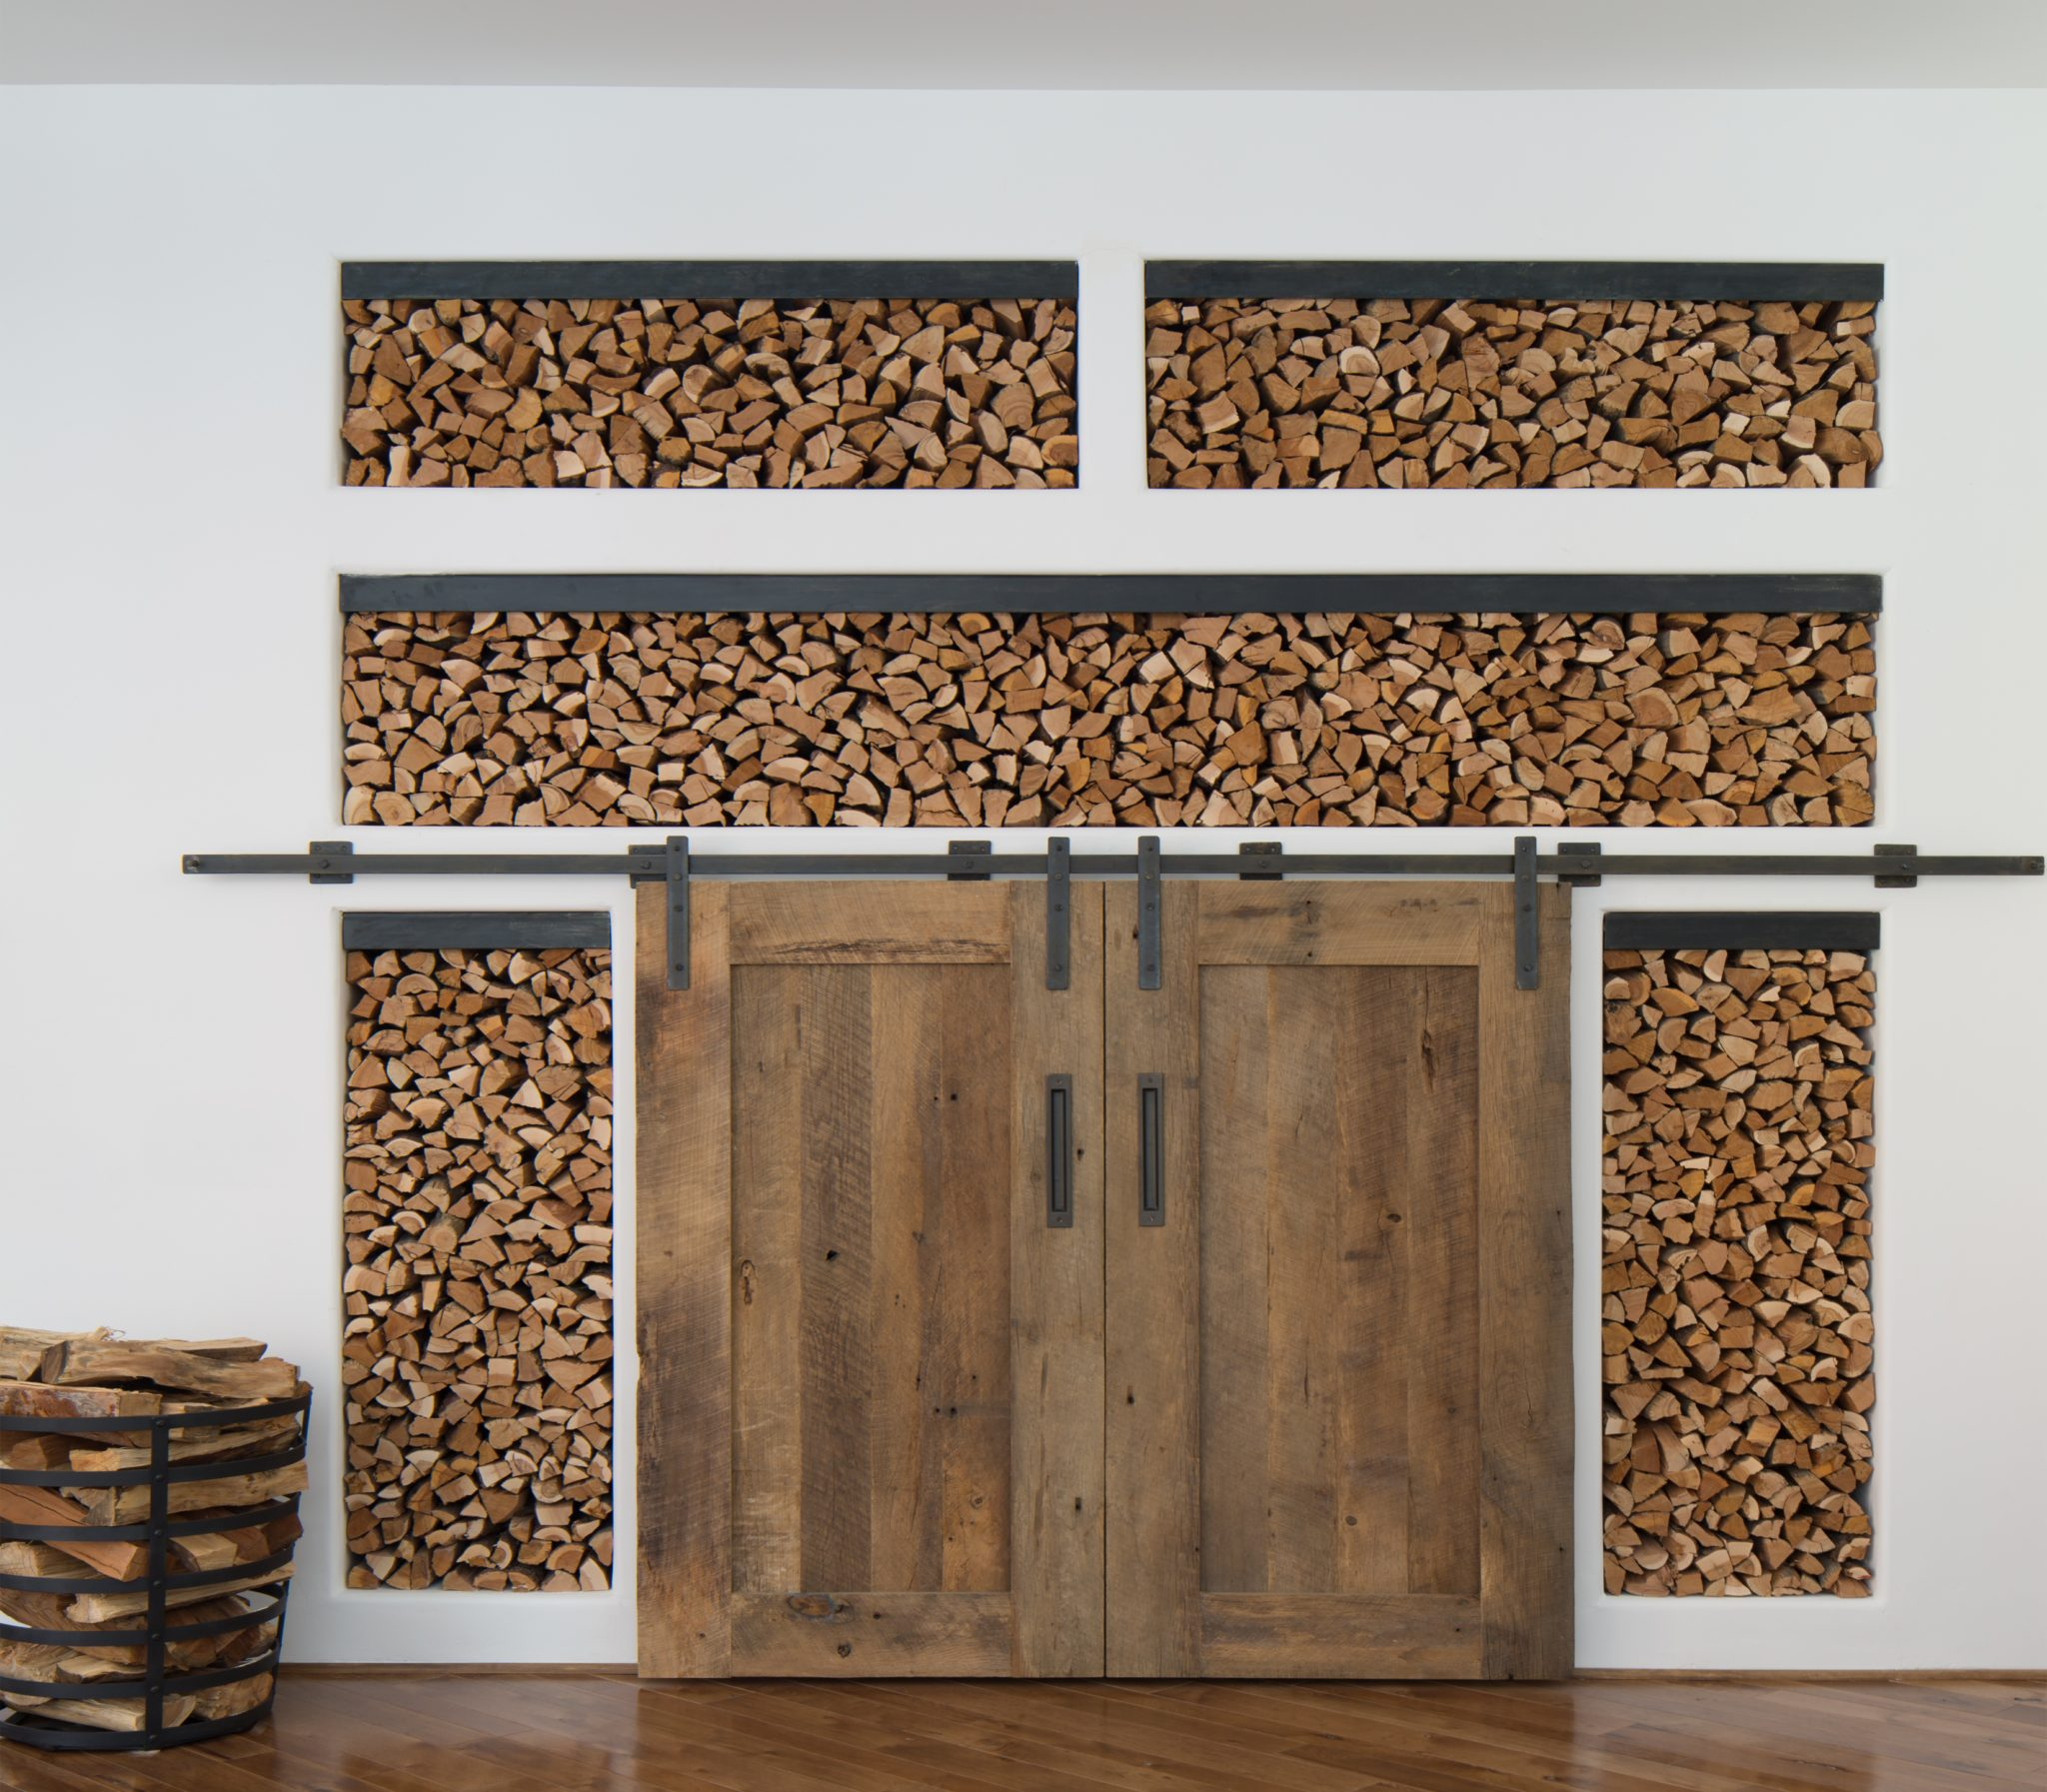 Barn doors to cover television and quarter sawn oak wood facade. by The Refined Group